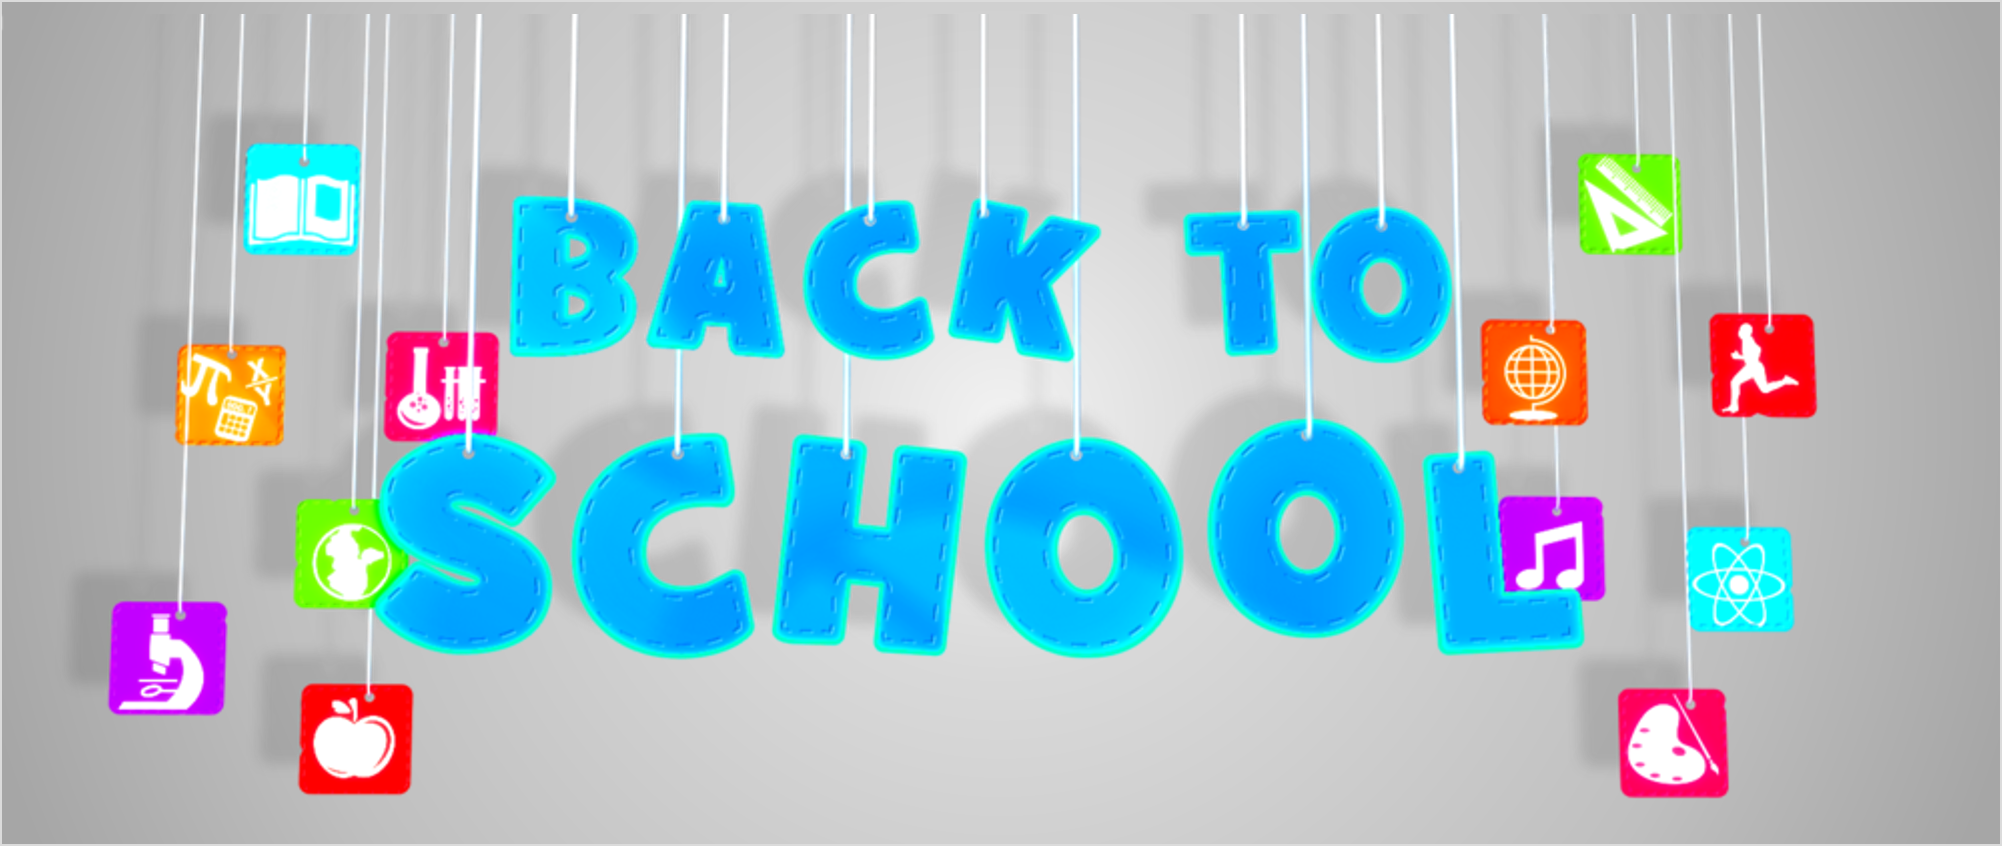 HR and Back To School -  5 Tips to Fill A New Role